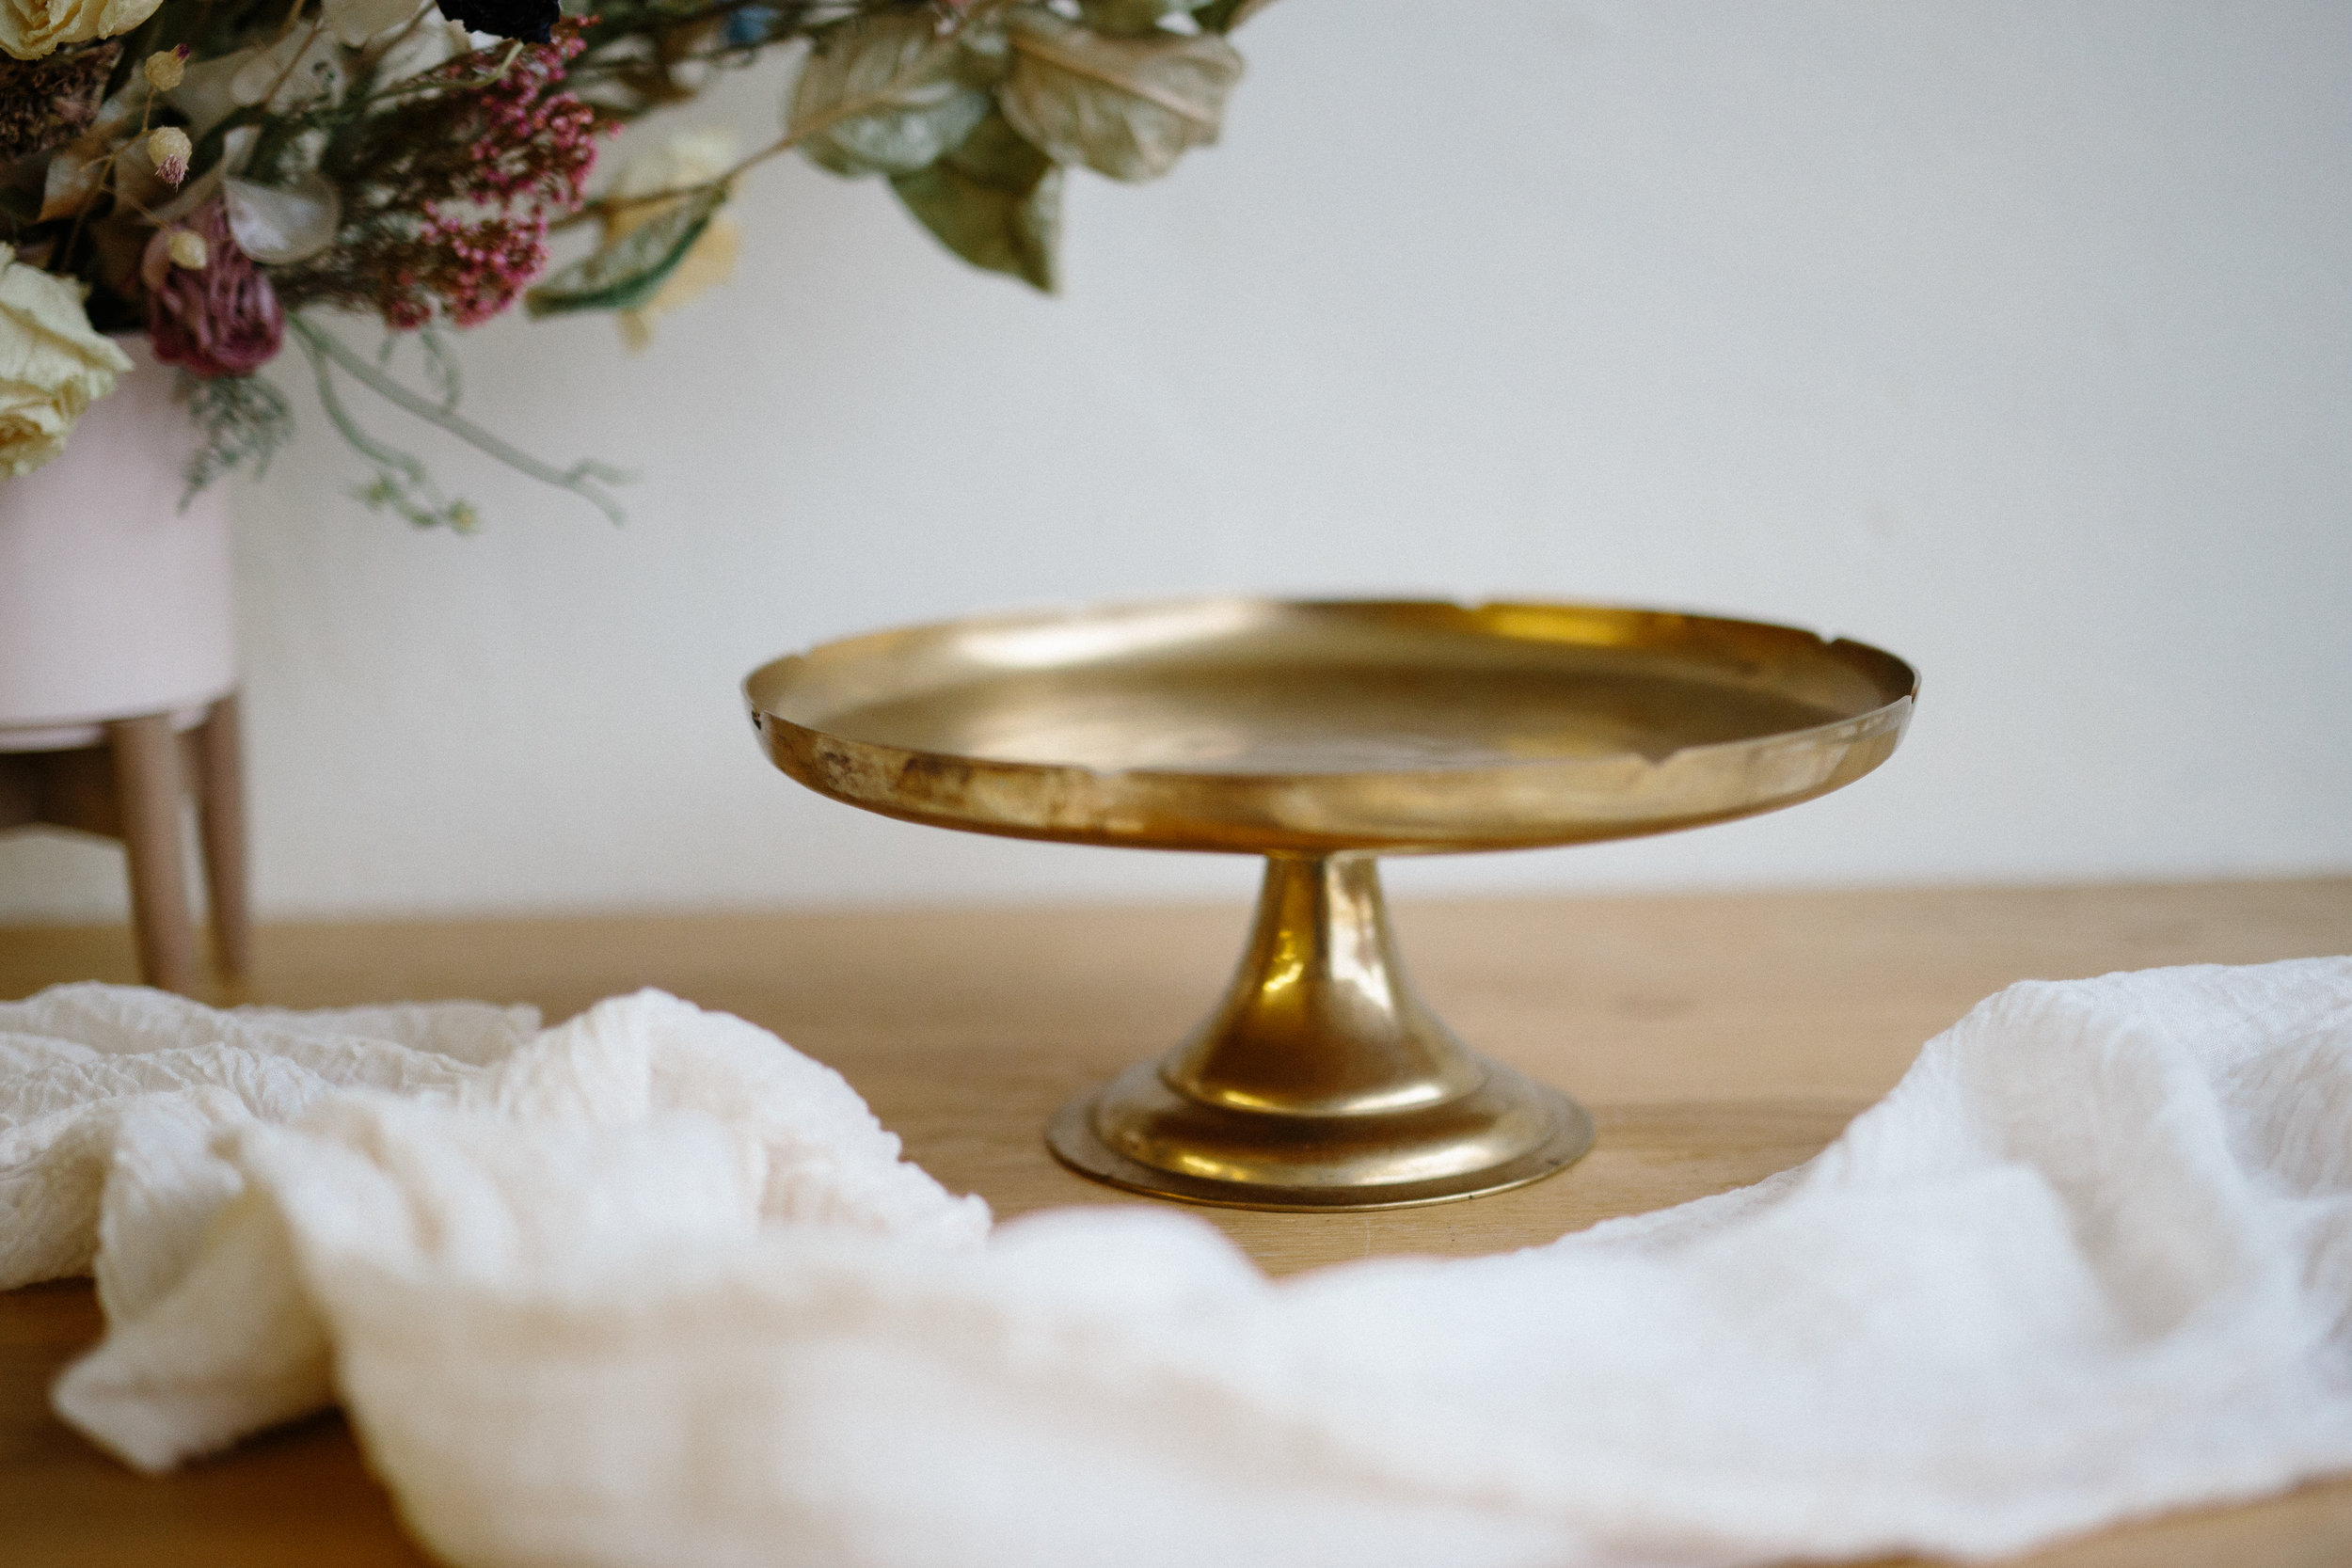 LARGE BRASS CAKE STAND // $15